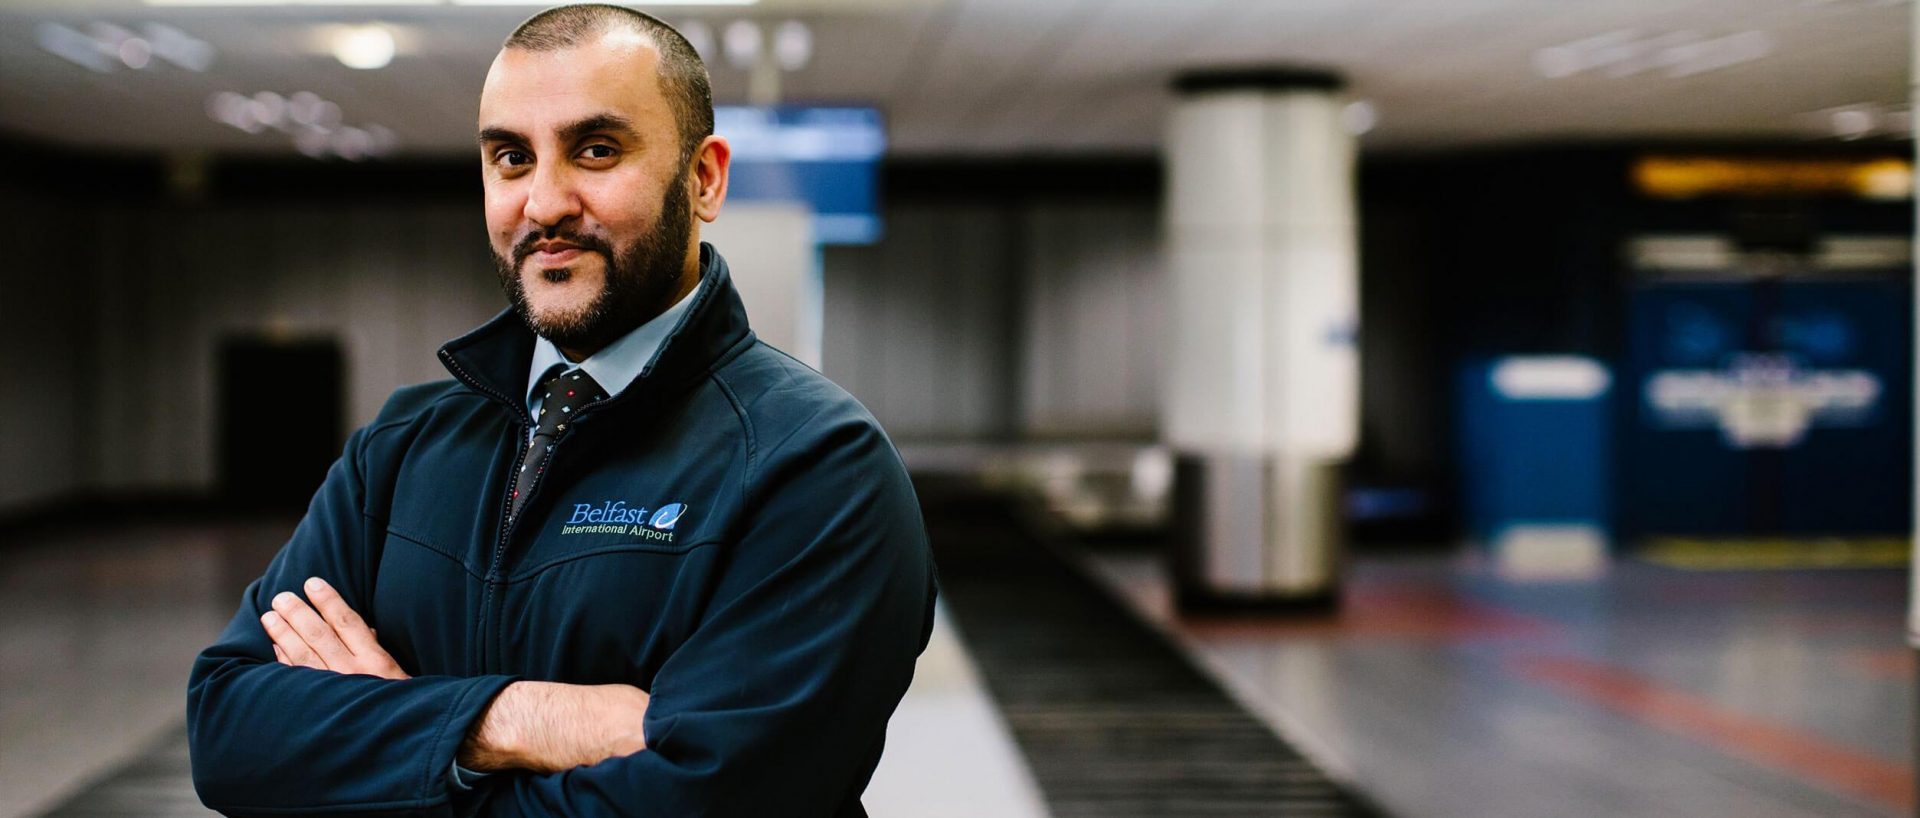 Using-Real-time-Passenger-Feedback-Improve-Security-Experience-Belfast-International-Airport